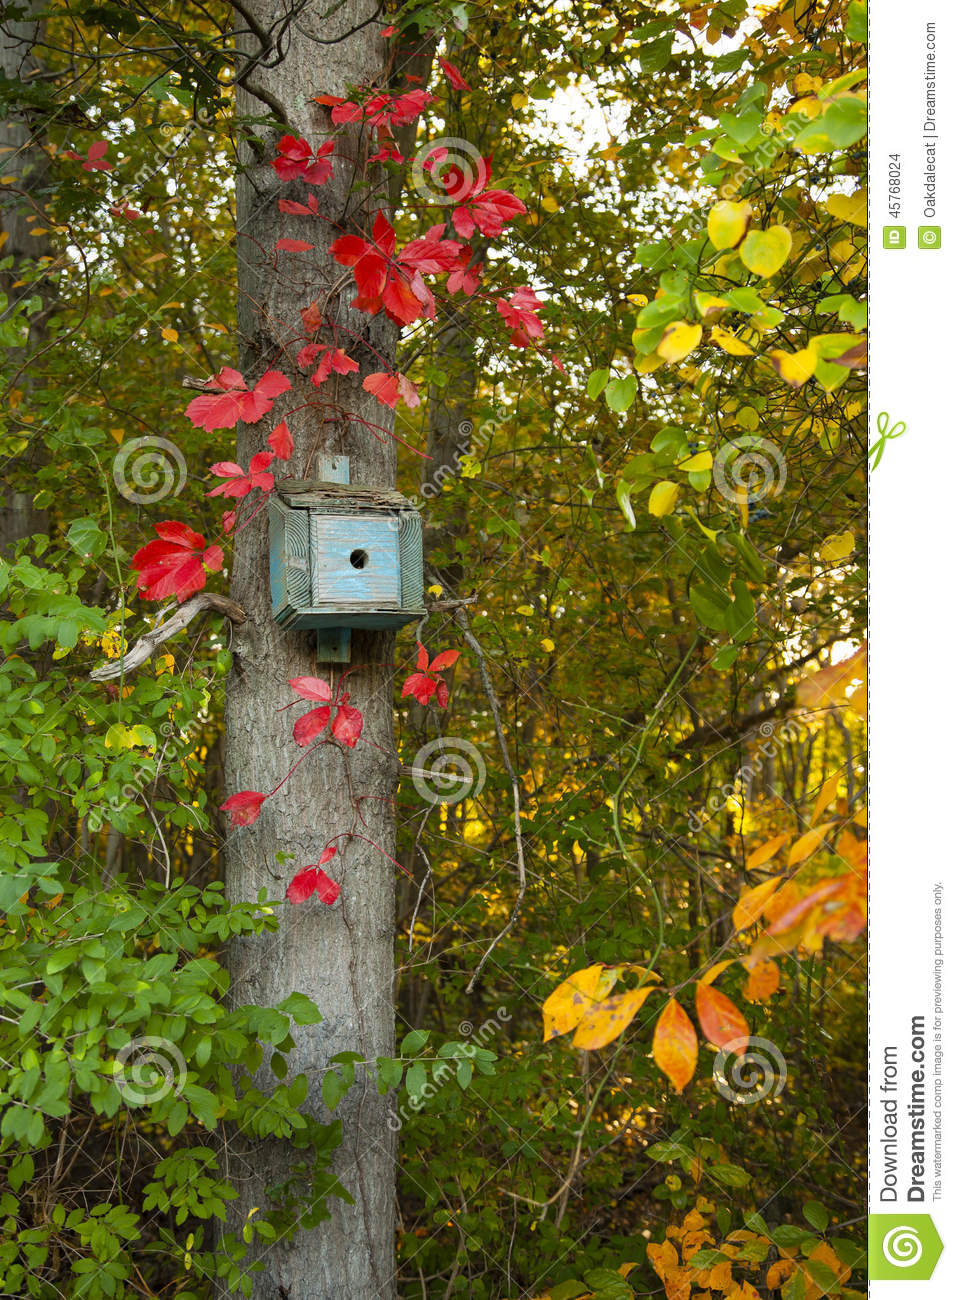 Blue Bird House Surrounded By Leaves In Fall Colors Stock